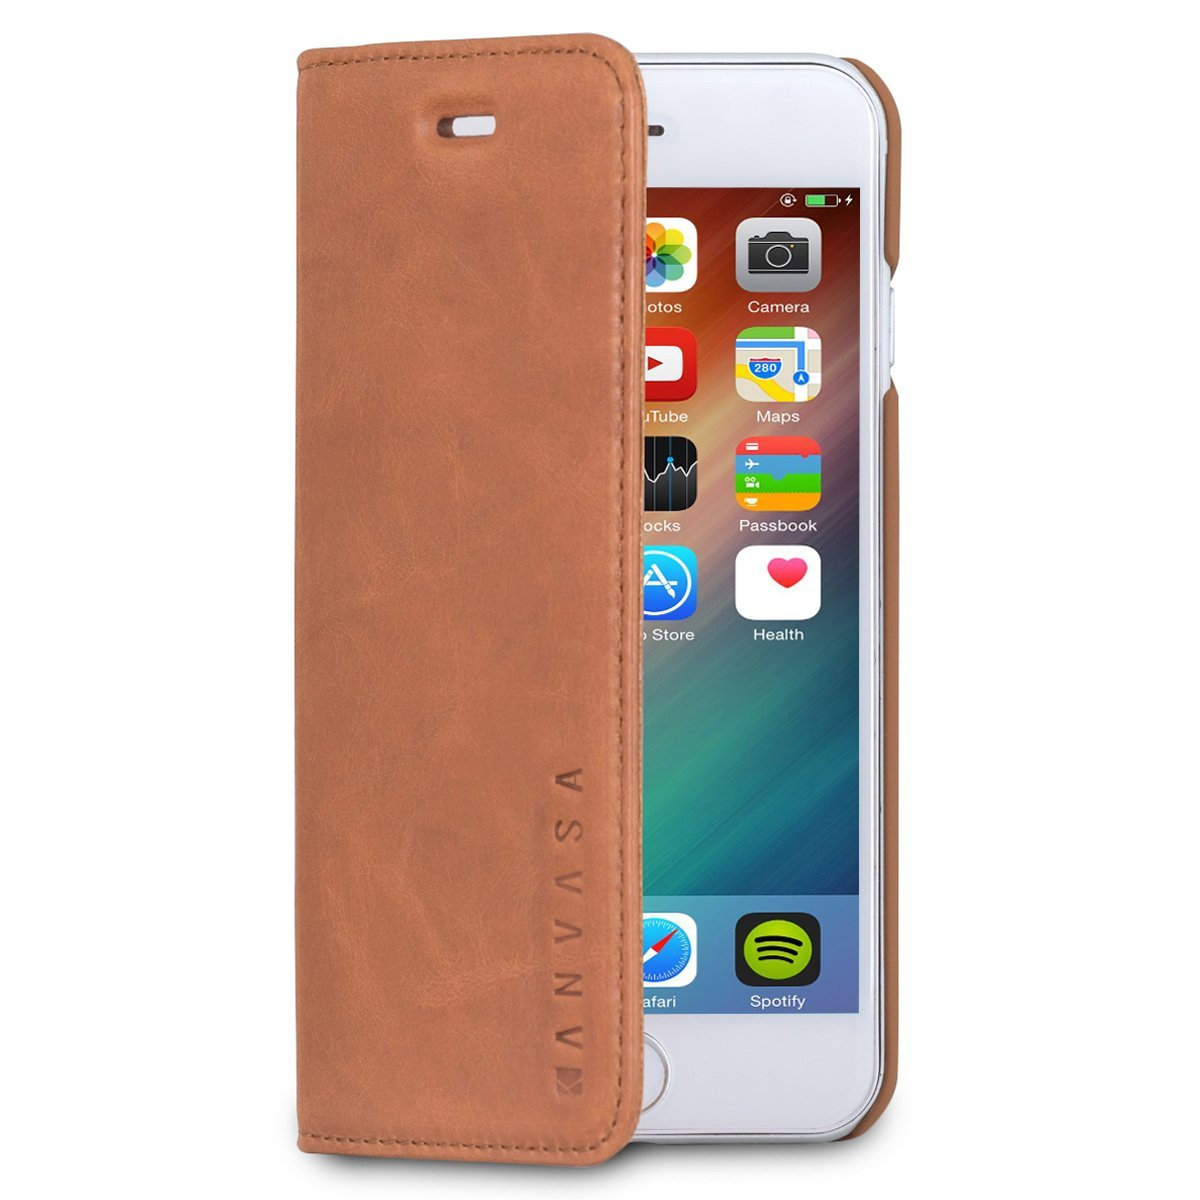 "iPhone 6 / 6s Leather Case Flip Cover Brown - KANVASA ""Pro"" Premium Genuine Leather Wallet Book Folio Case for the Original iPhone 6/6s (4.7 inch) - Ultra Thin with Magnetic Closure"